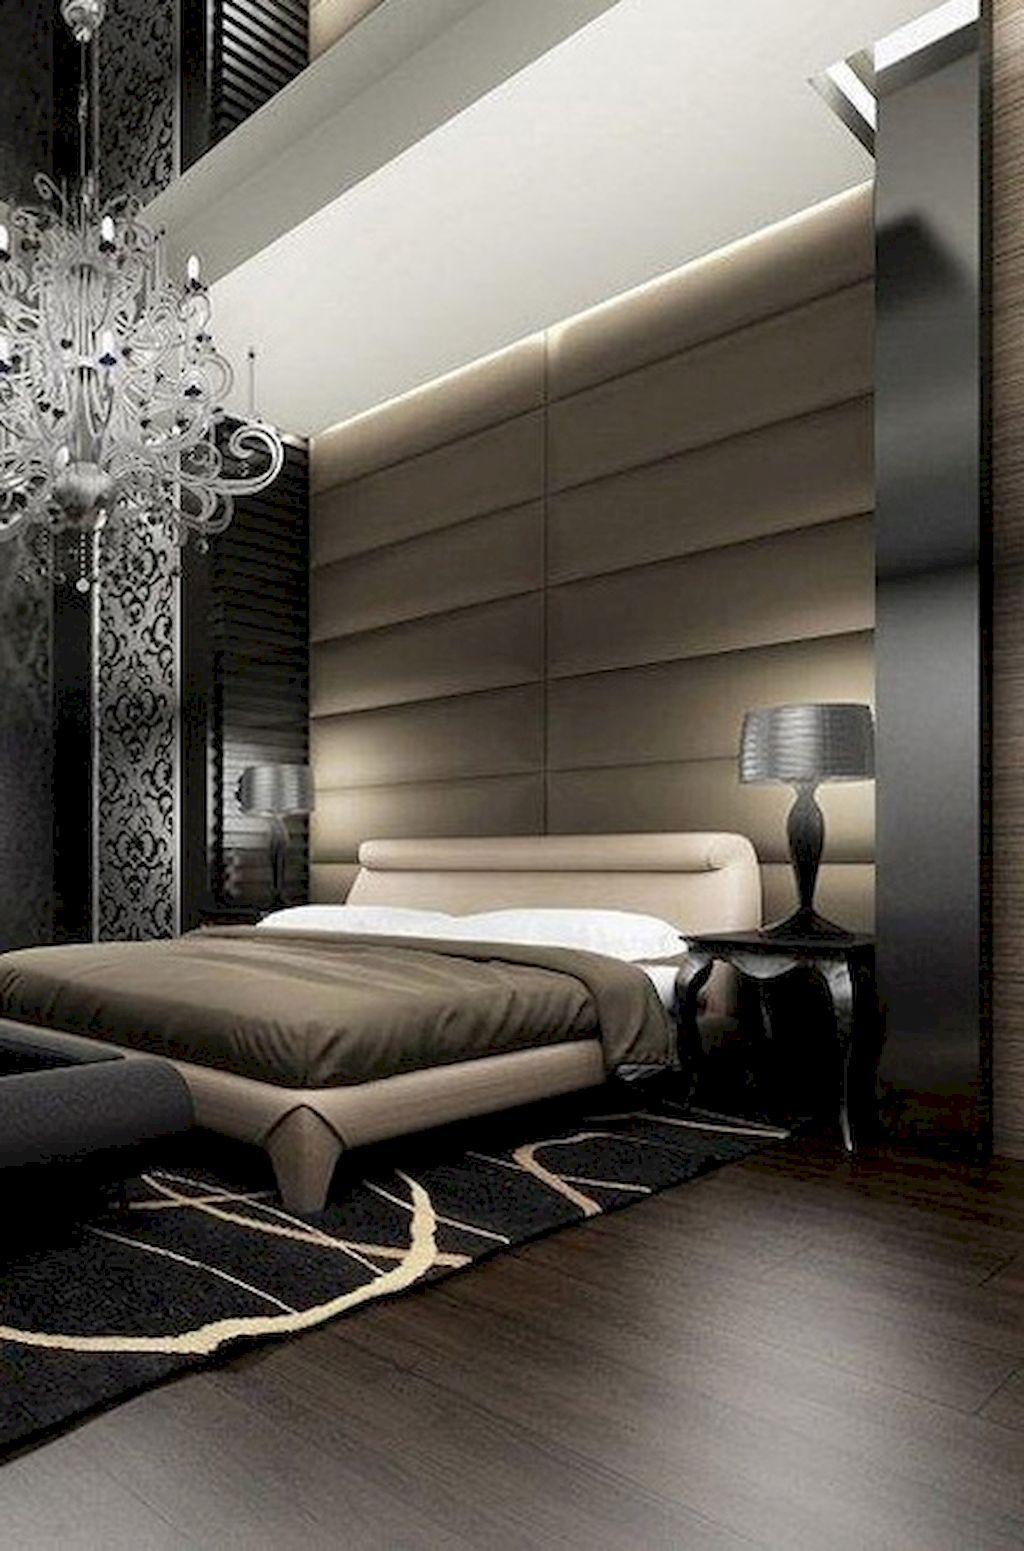 60 Luxury Bedroom Ideas Decoration Luxury Master Bedroom Design Luxury Bedroom Master Luxurious Bedrooms